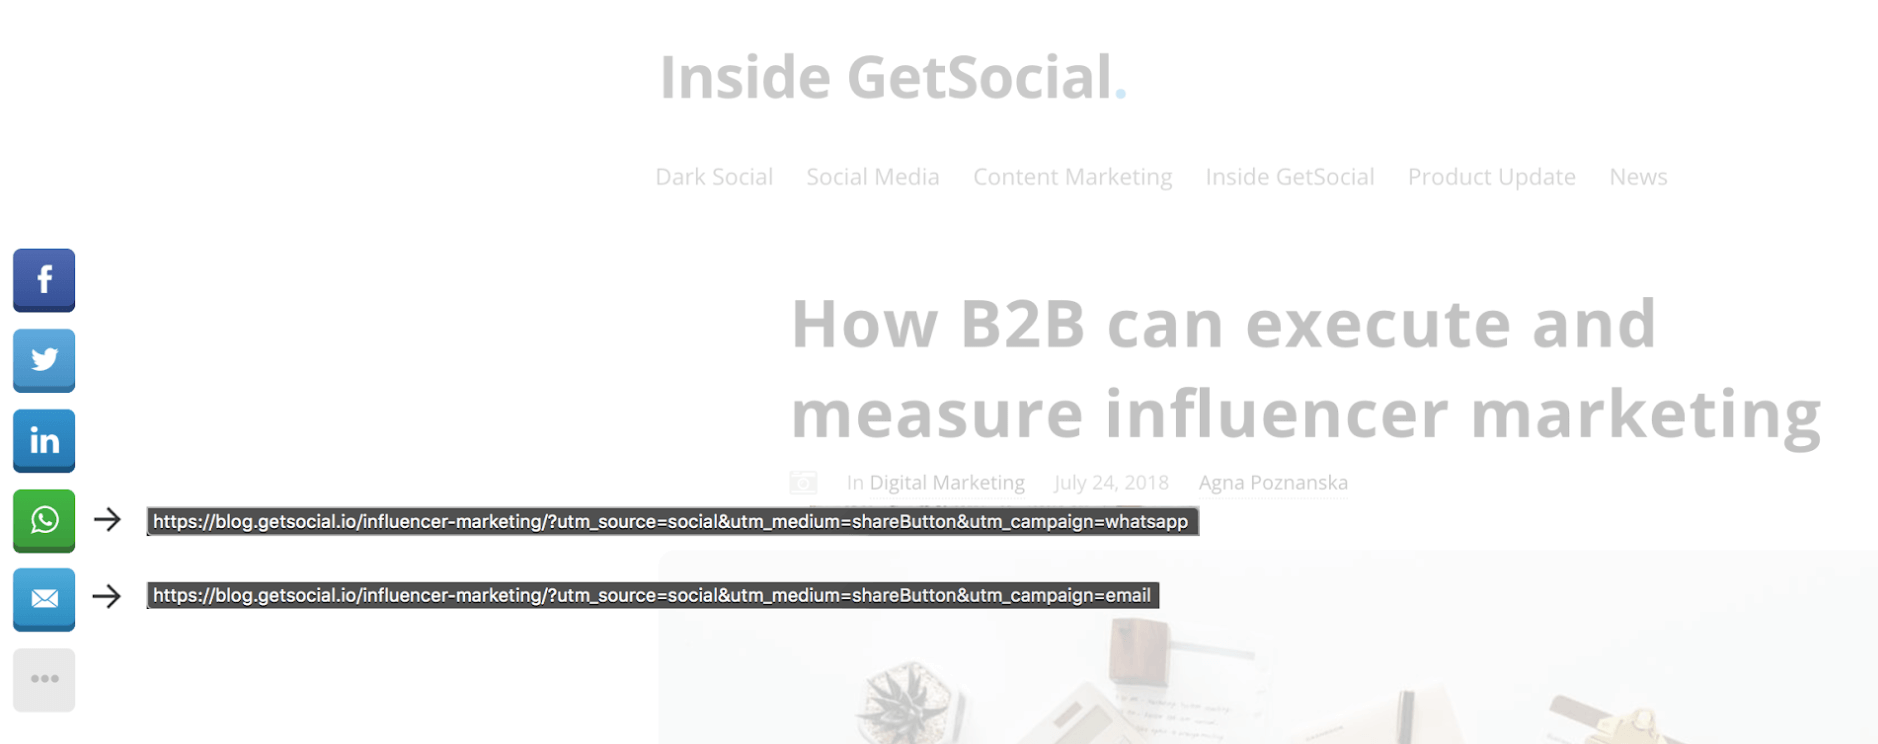 Dark Social: your new largest traffic source | Smart Insights